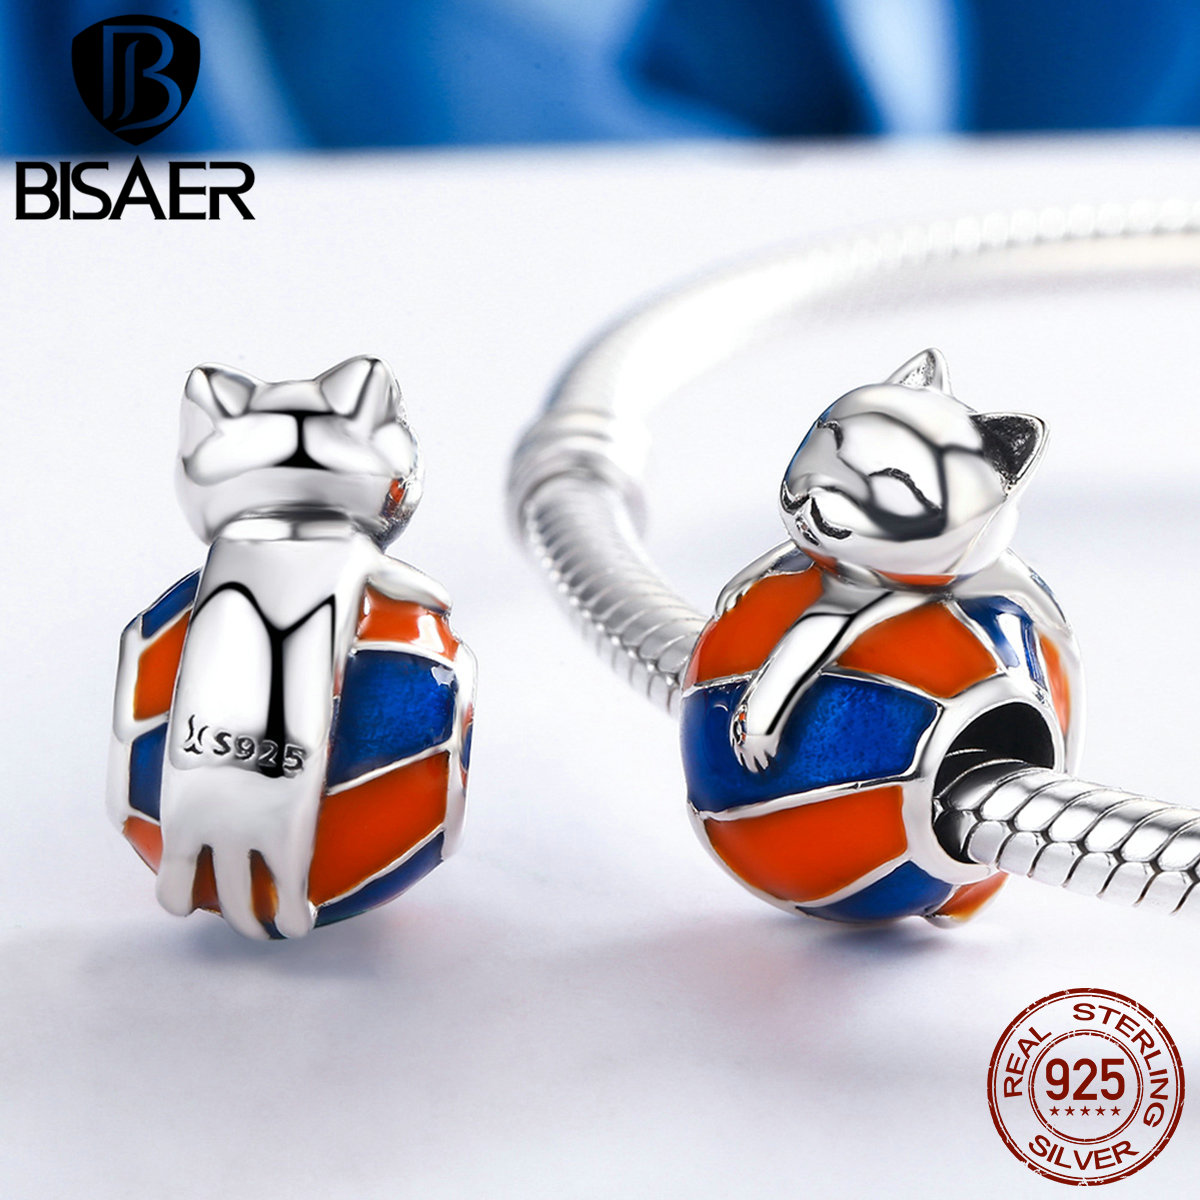 BISAER Authentic 925 Sterling Silver Naughty Animal Lovely Cat Beads Fit BISAER Charms Bracelets & Necklaces Jewelry ECC161BISAER Authentic 925 Sterling Silver Naughty Animal Lovely Cat Beads Fit BISAER Charms Bracelets & Necklaces Jewelry ECC161